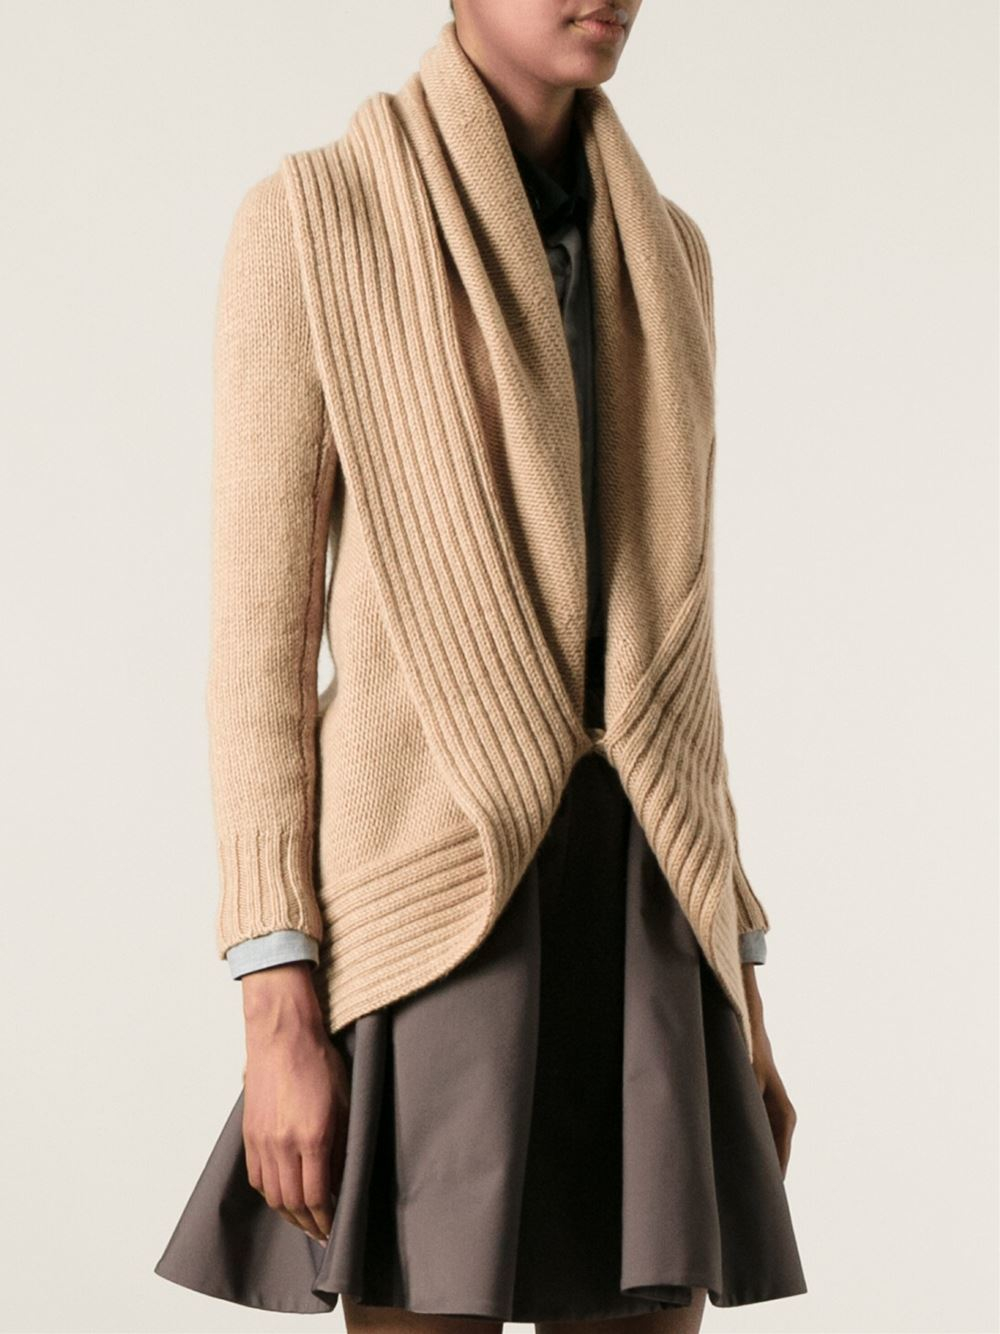 Ralph Lauren Black Label Shawl Collar Cardigan In Natural